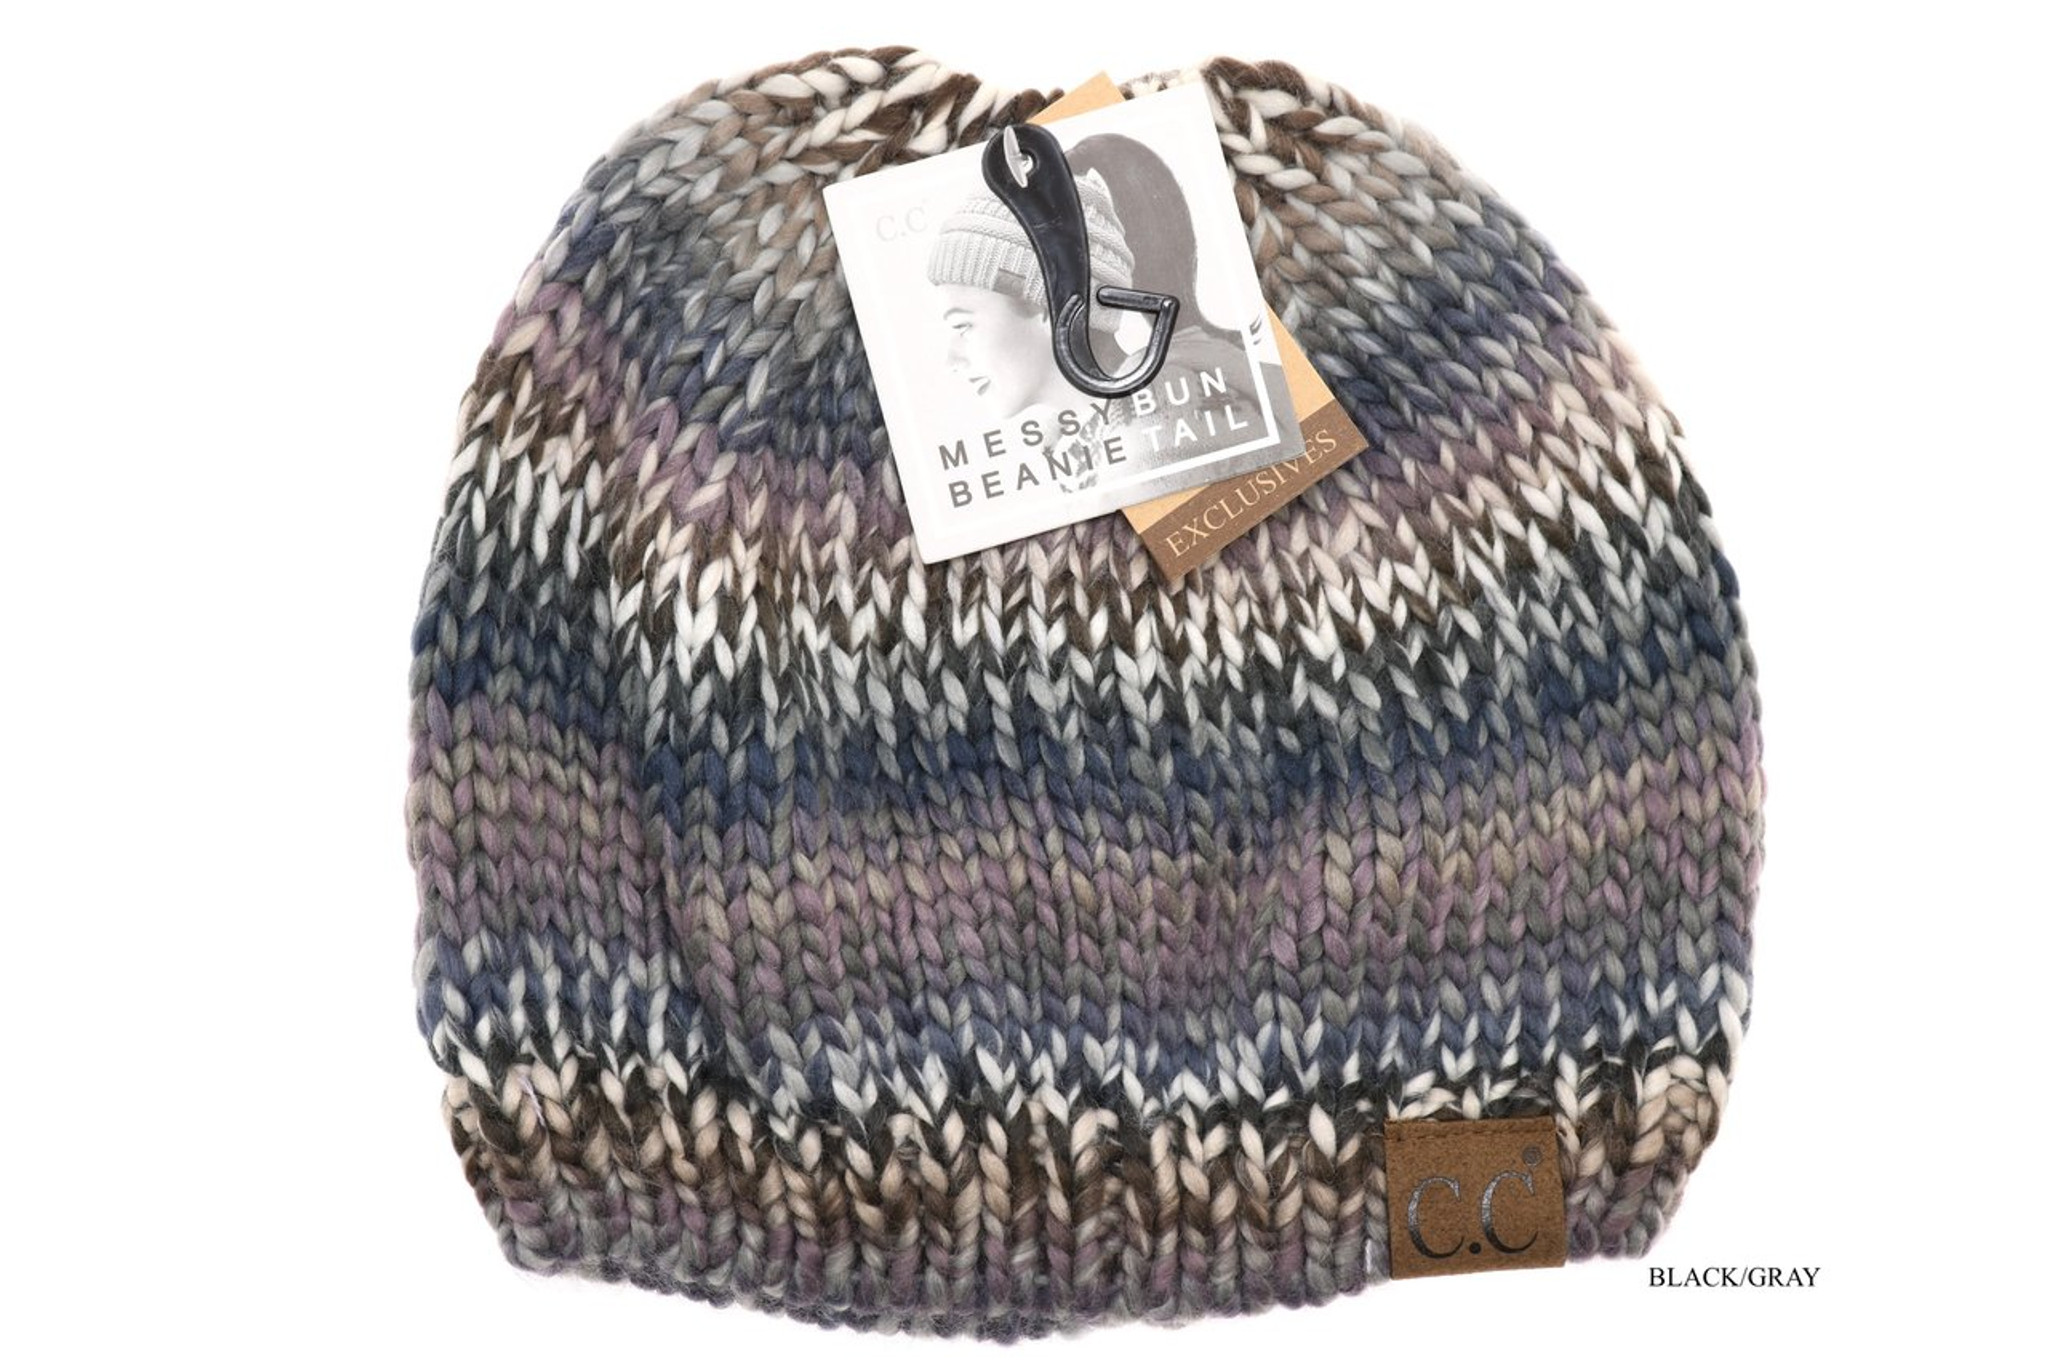 3afe676e7 C.C. Beanie, Multi Color, Messy Bun Beanie Tail